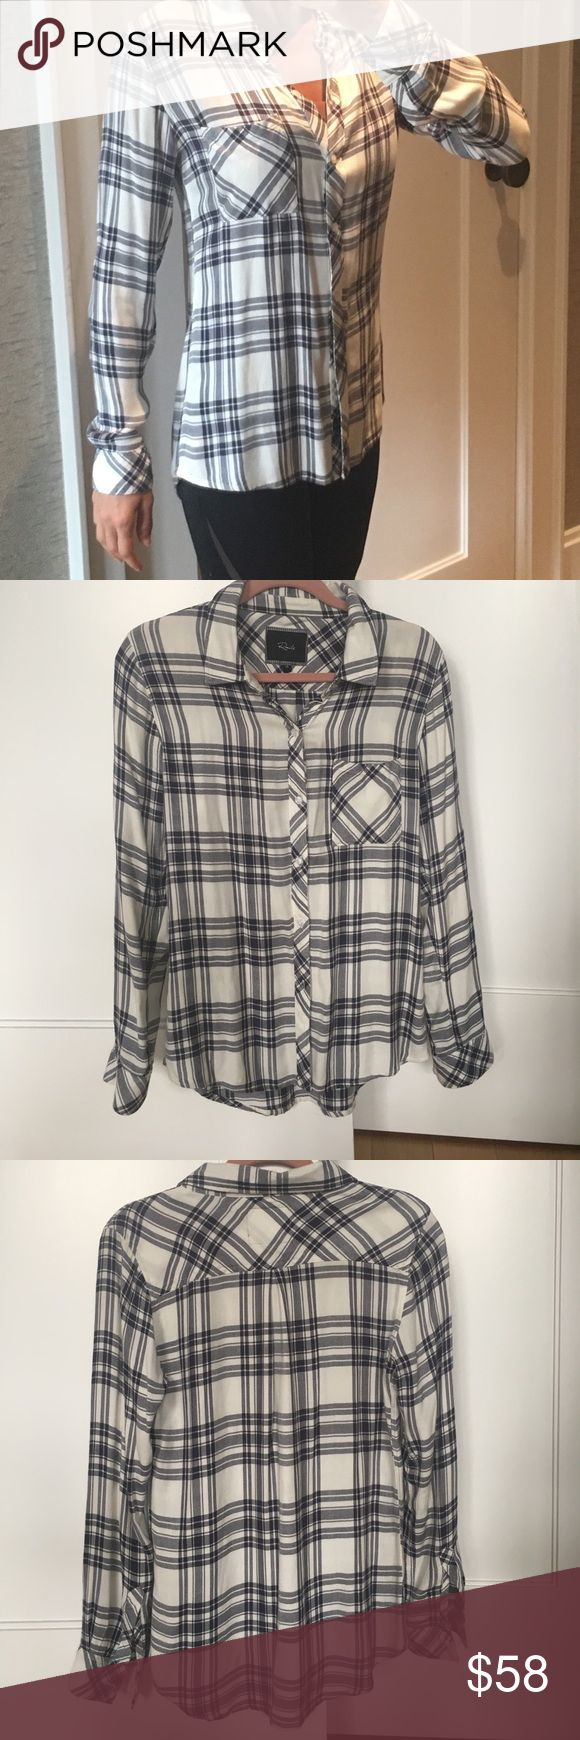 Rails plaid long sleeve button down shirt Women's blue and white plaid long sleeve button down shirt. Made for a loose fit. 100% Rayon, so no wrinkles!  Very good condition. Rails Tops Button Down Shirts